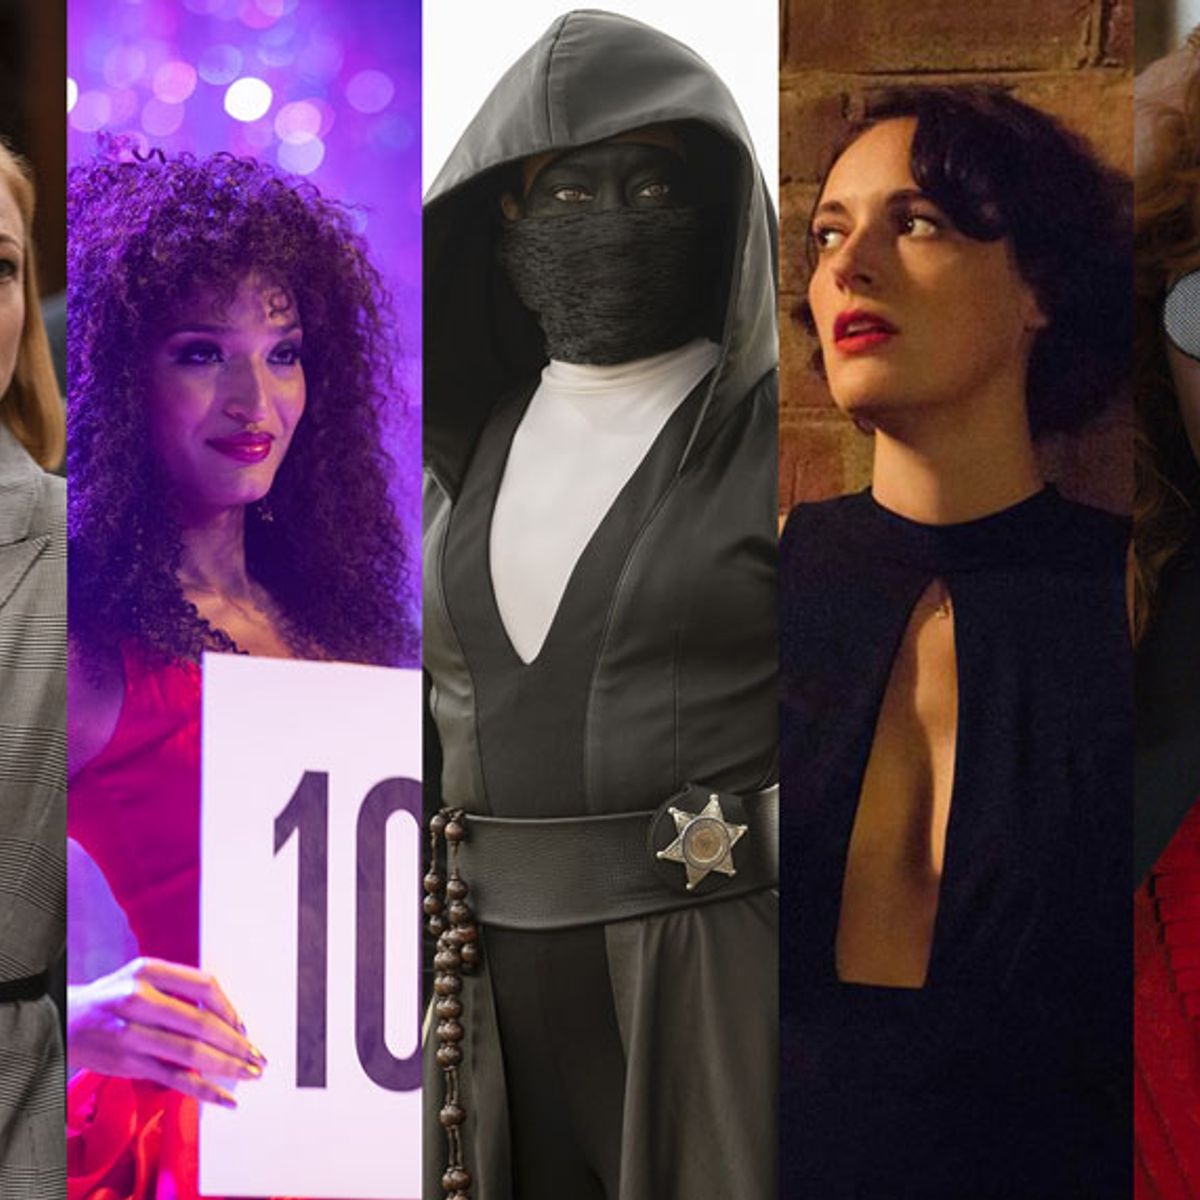 This one (only) goes up to 11: the Best TV of 2019 and the many runners-up